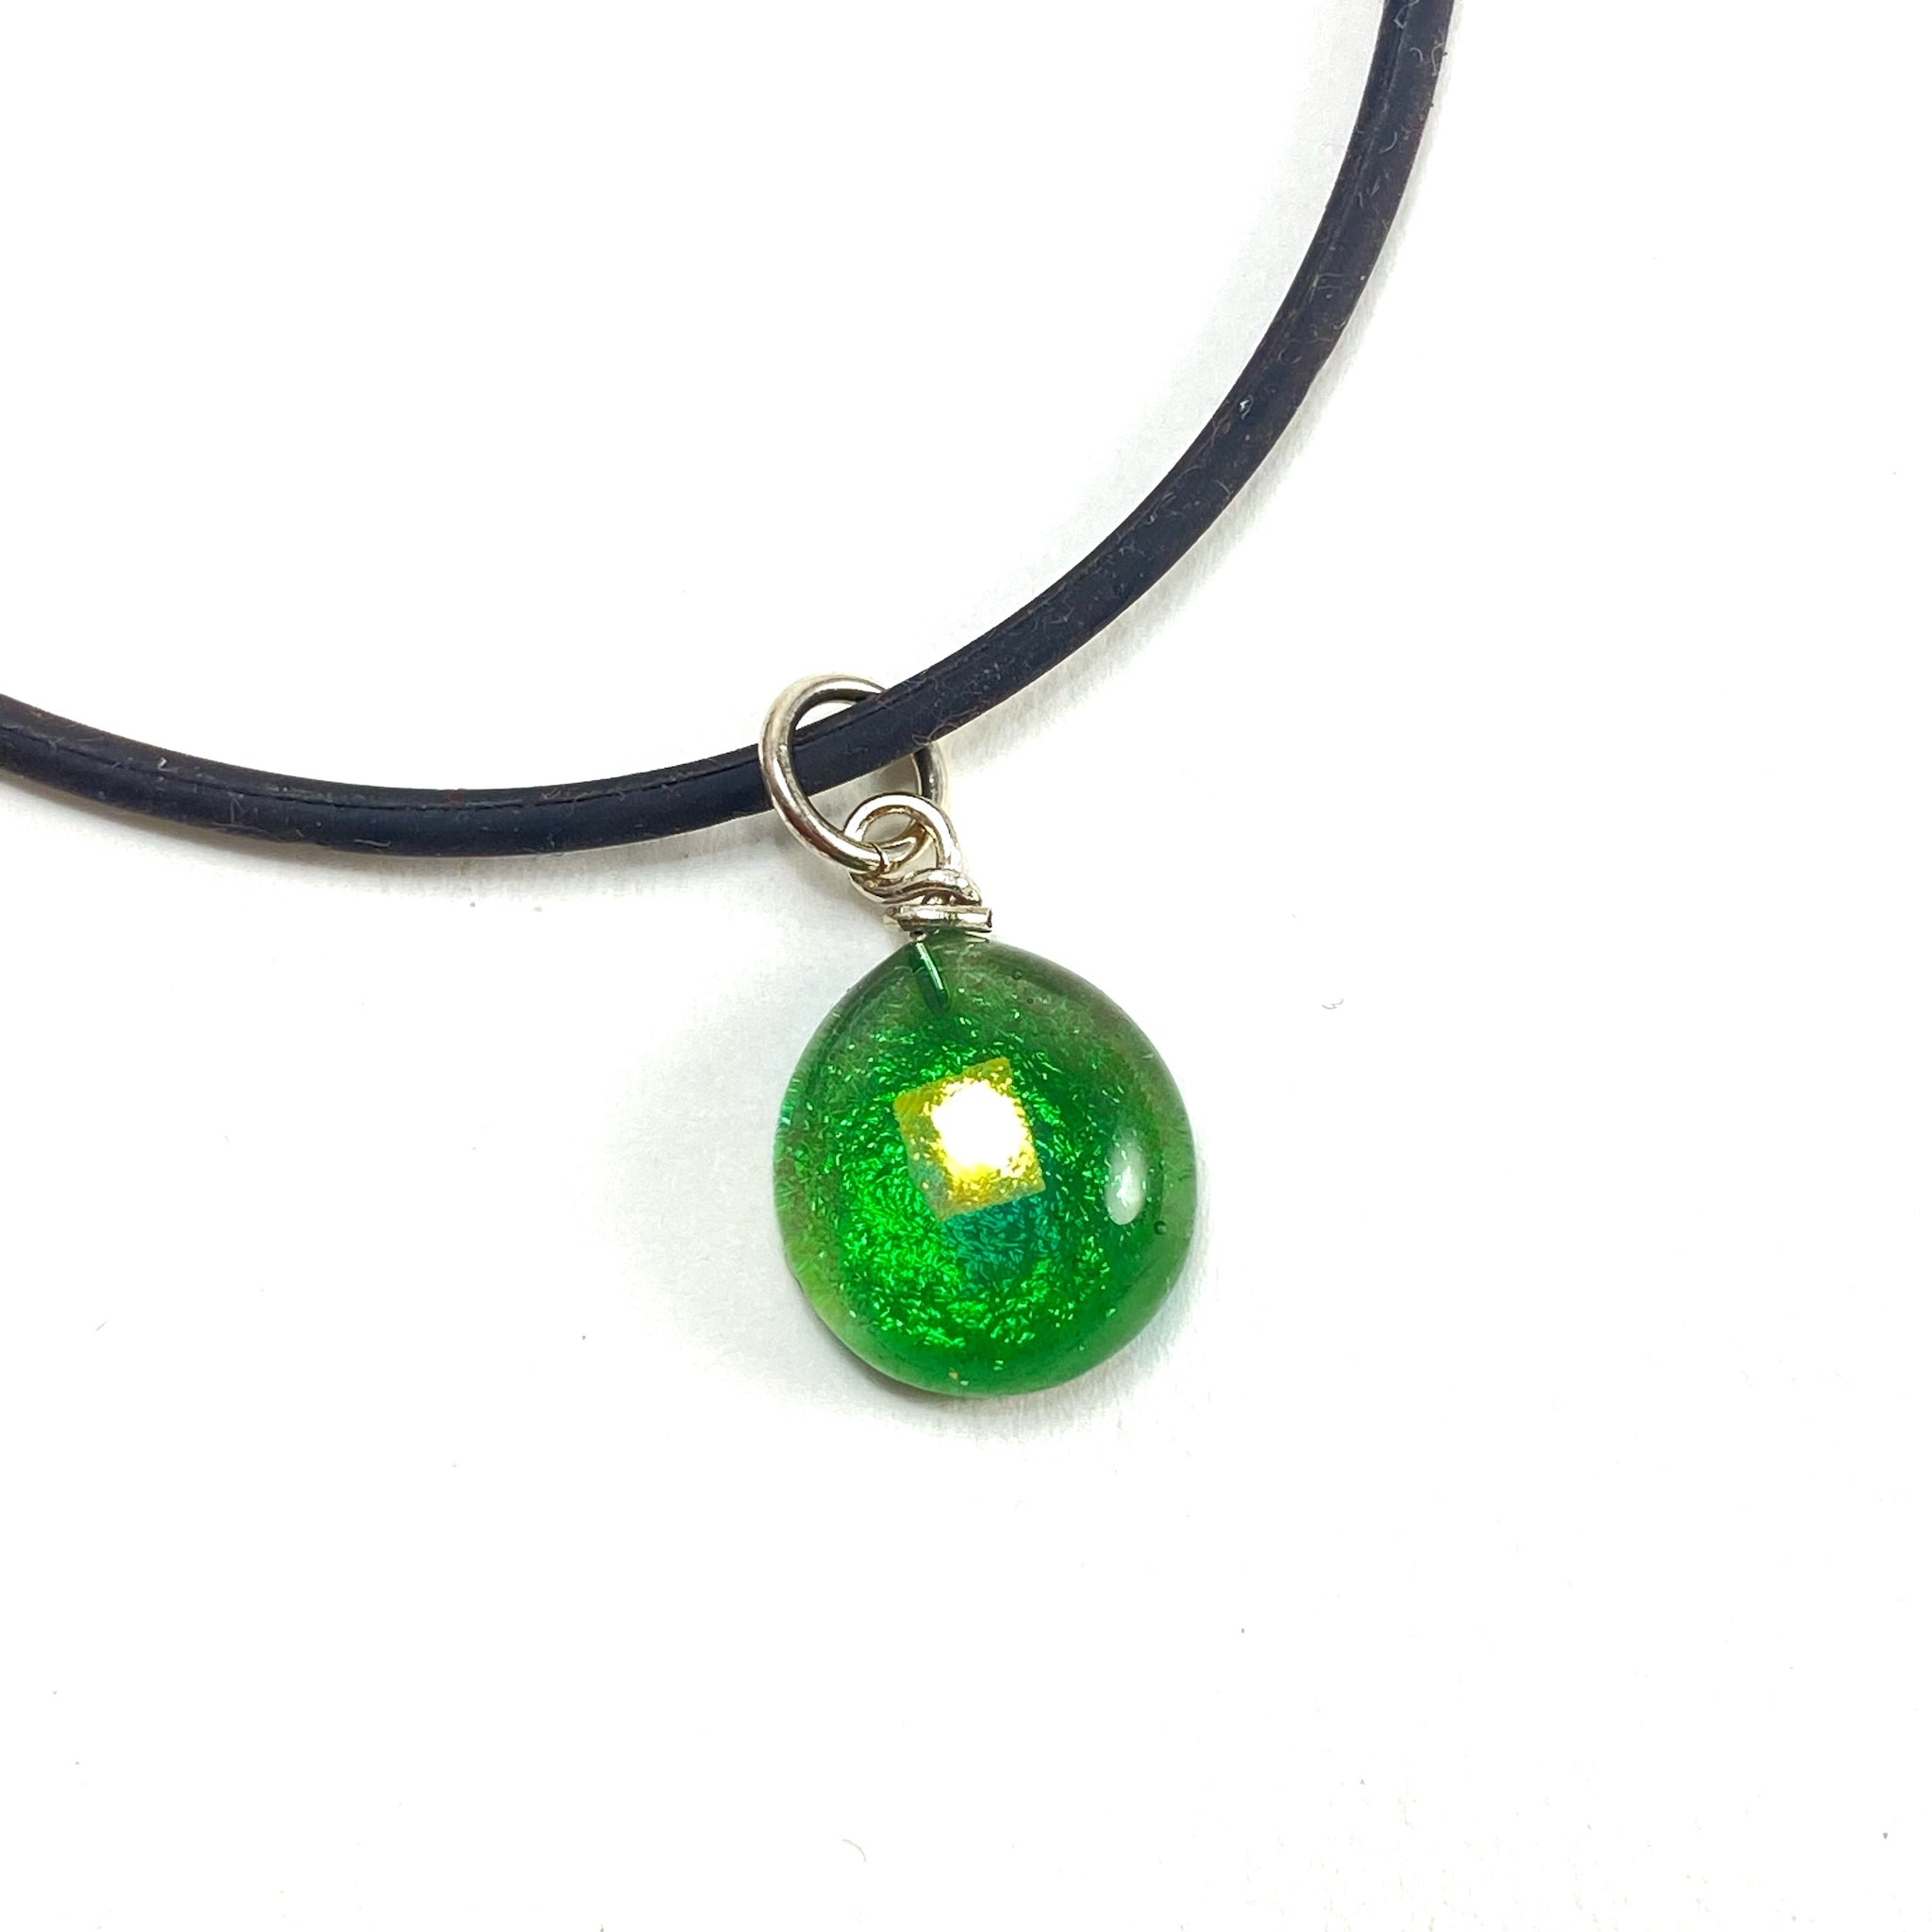 green glass ball necklace, fused glass, glass jewelry, glass and silver jewelry, handmade, handcrafted, American Craft, hand fabricated jewelry, hand fabricated jewellery,  Athen, Georgia, colorful jewelry, sparkle, bullseye glass, dichroic glass, art jewelry